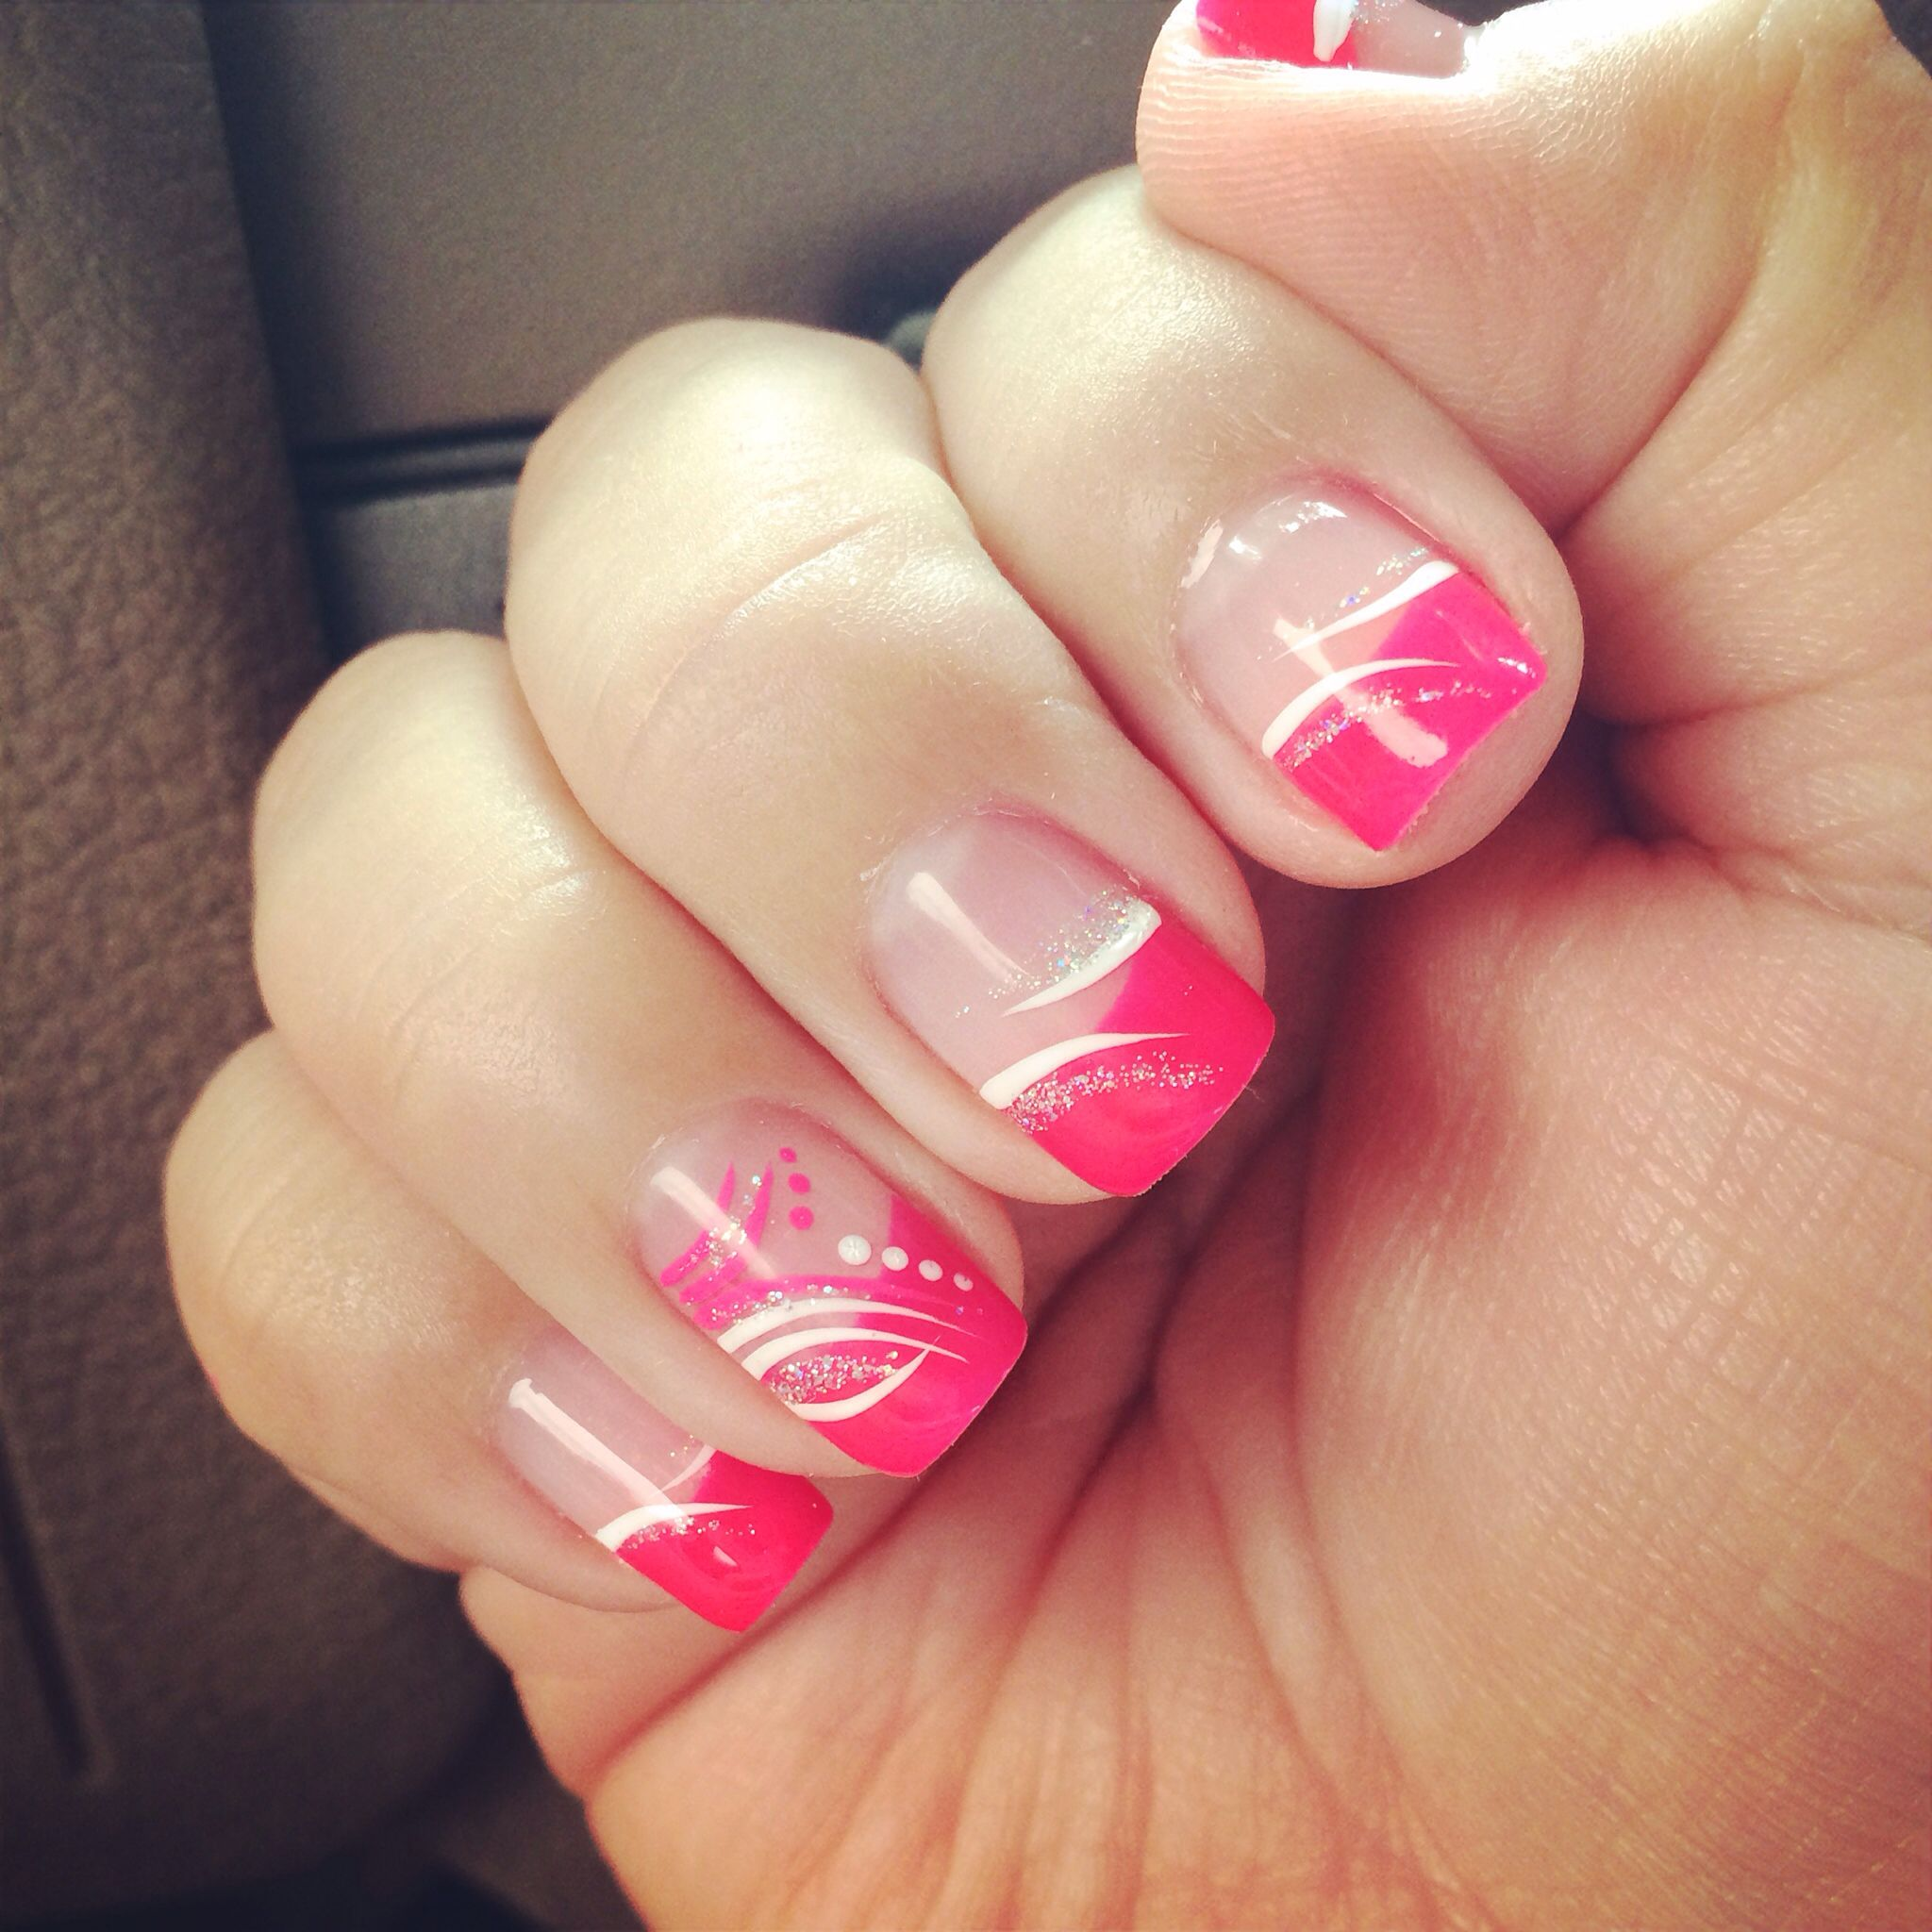 shellac pink tips with wisp design super cute nail design nail art ...